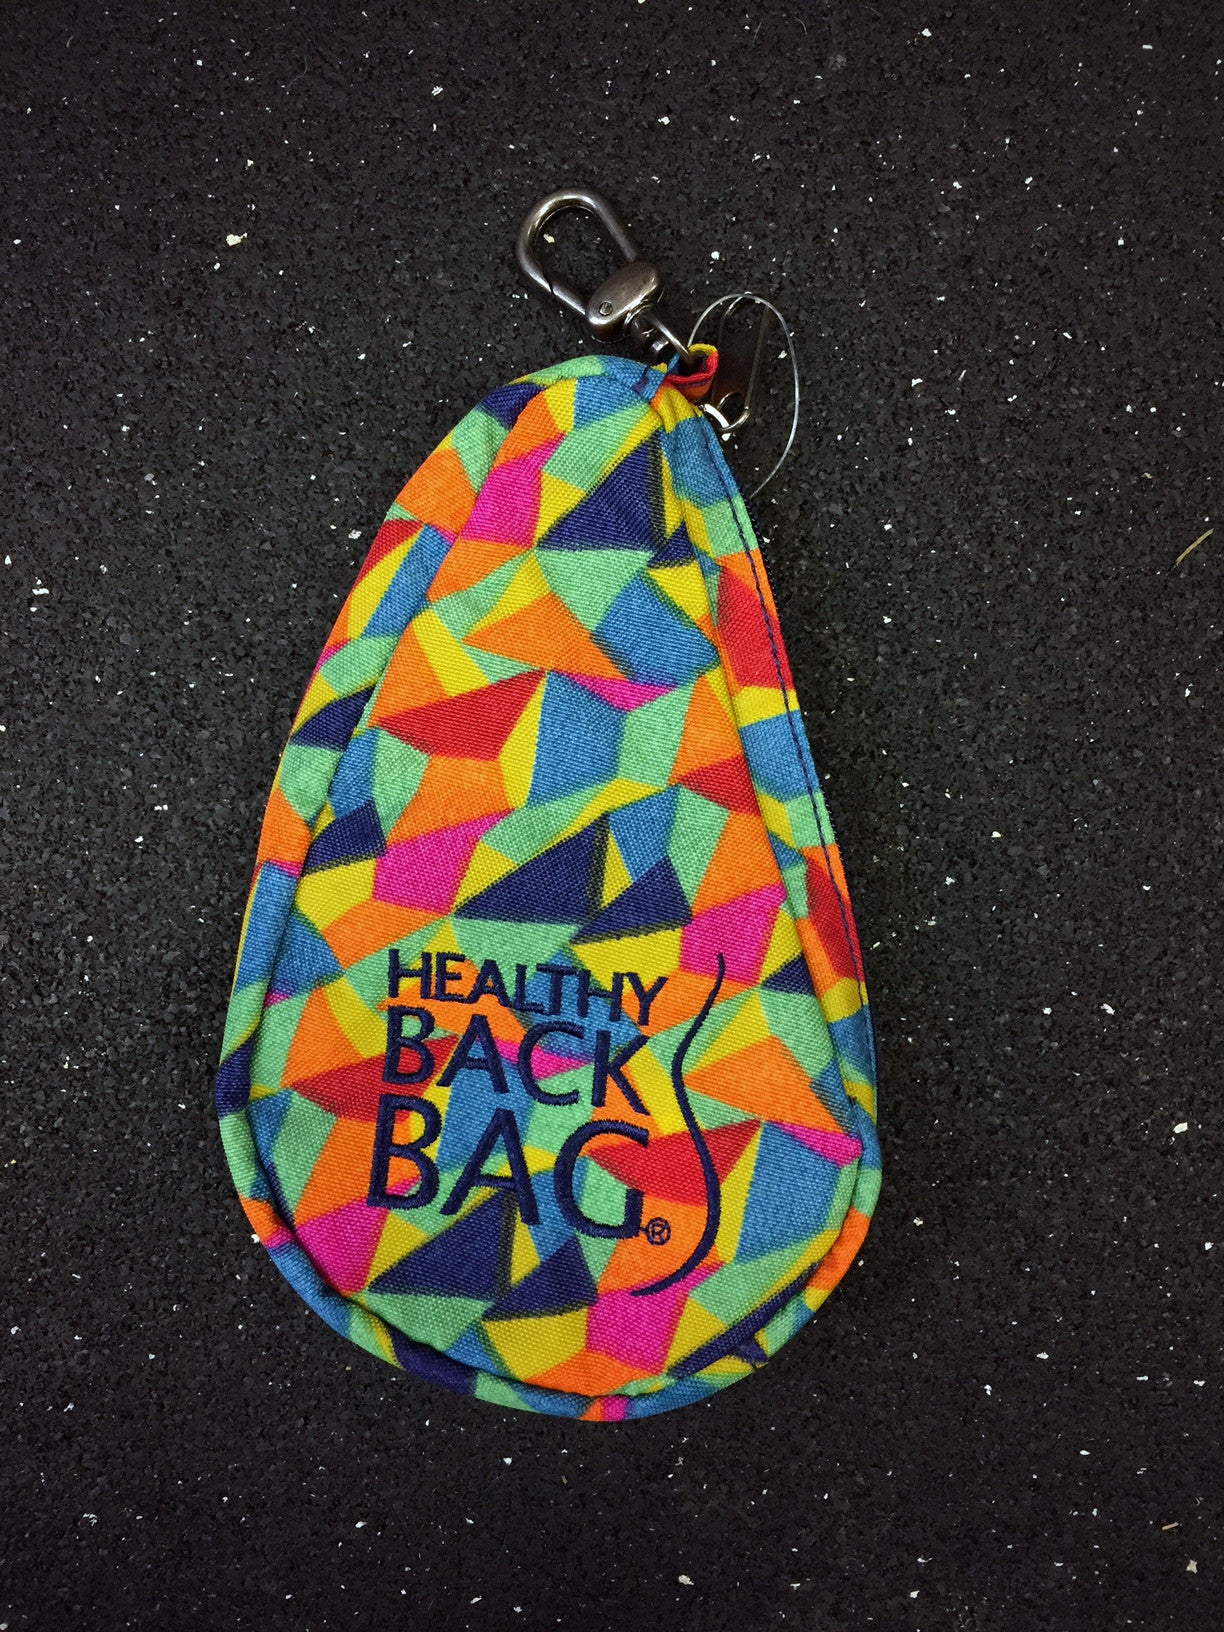 Healthy Back Bag Textured Nylon Pouch - Purse - Trailblazer Outdoors, Pickering